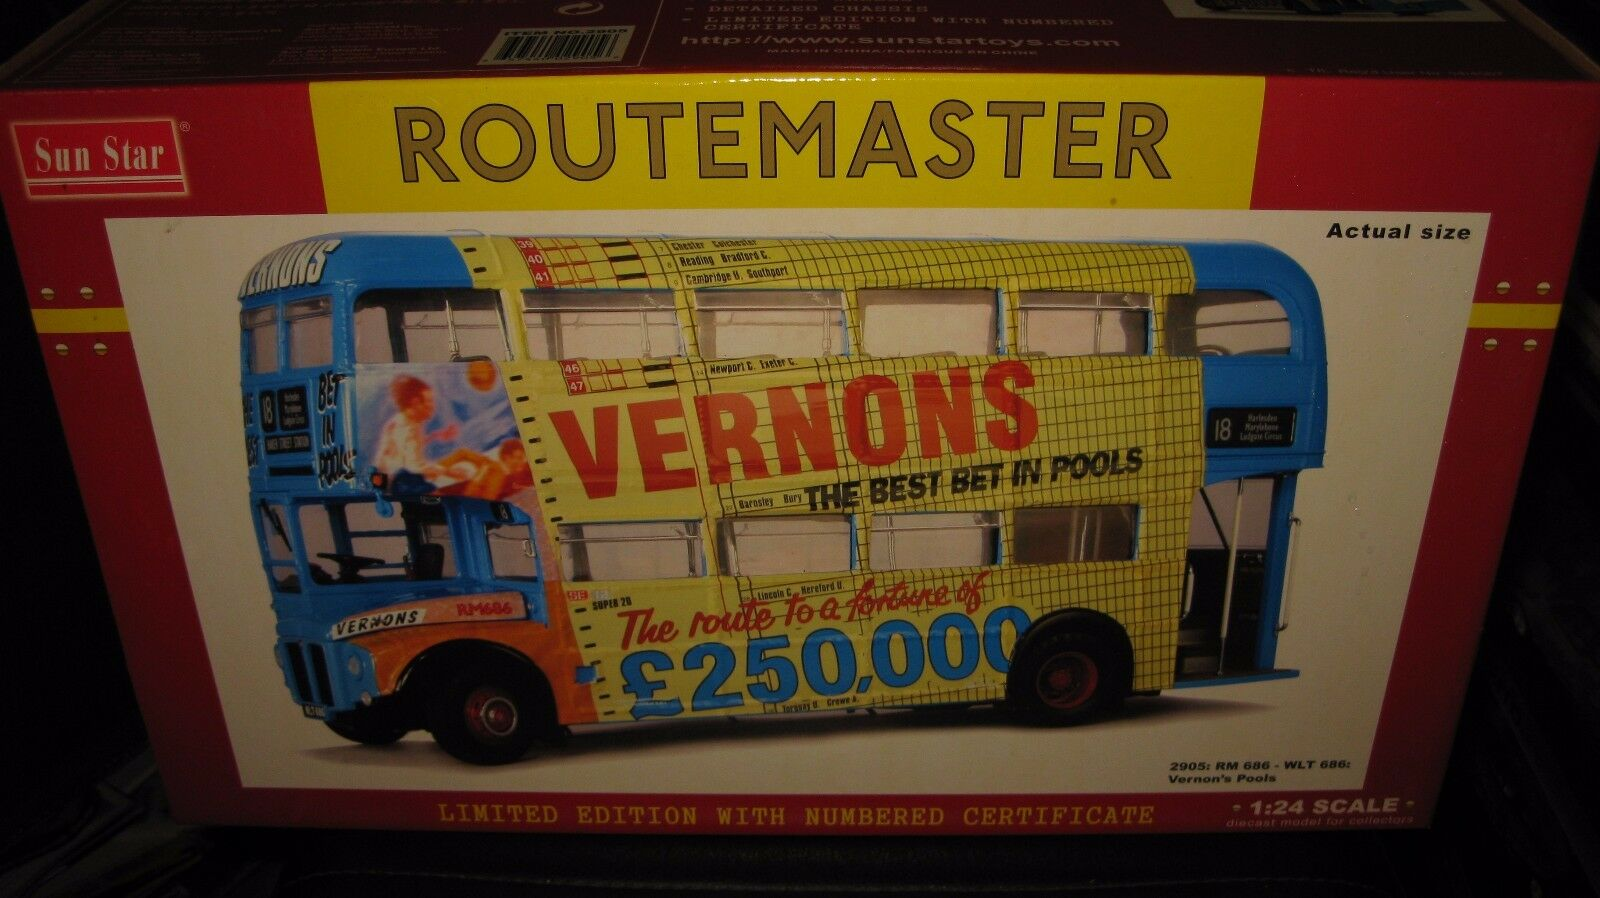 autentico en linea 1.24 SUN Estrella ROUTERMASTER BUS VERON'S POOLS RM 686 686 686 WLT 686 DOUBLE DECKER  2905  ofreciendo 100%